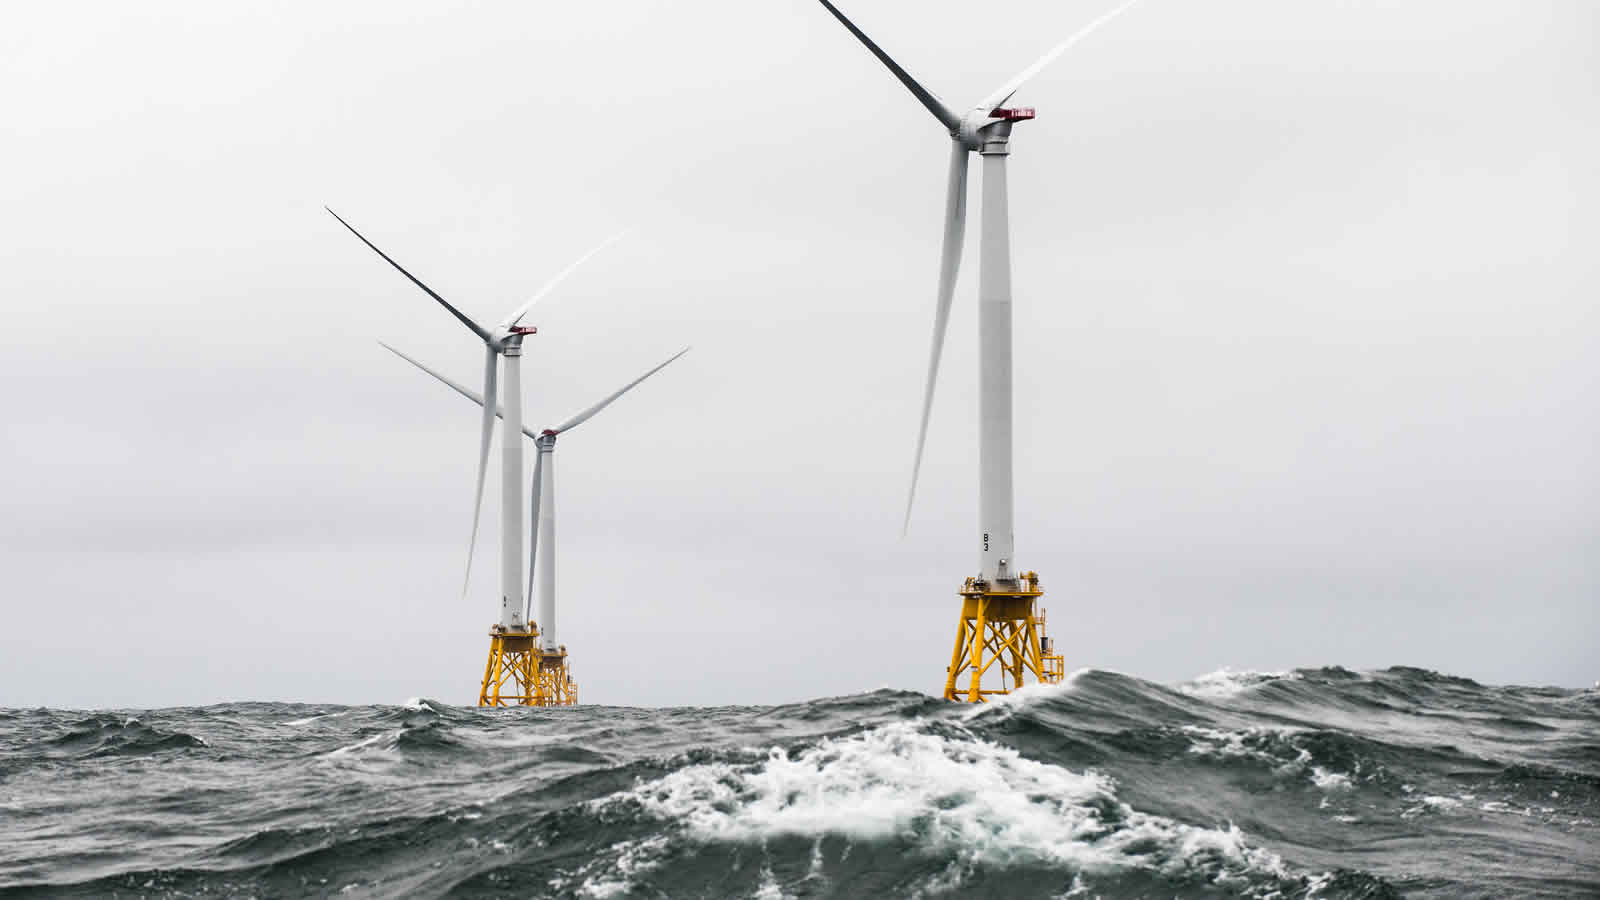 <h4>America's First Offshore Wind Farm</h4><h5>Block Island (R.I.) Wind Farm, Dec. 2016</h5><em>U.S. Dept of Energy Photo</em>